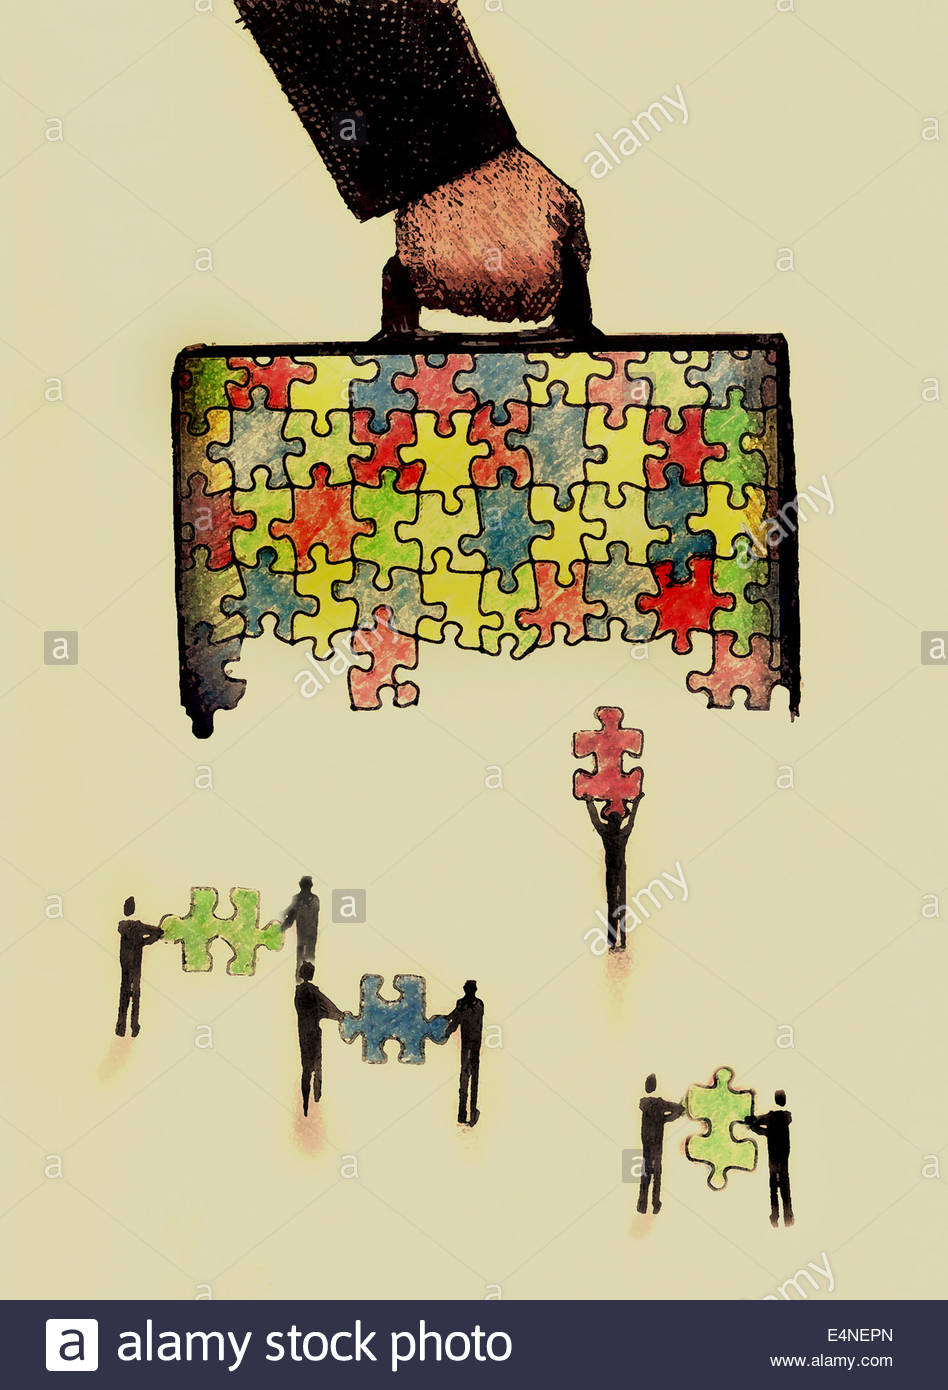 Business people working together assembling multicolored briefcase with jigsaw puzzle pieces - Stock Image